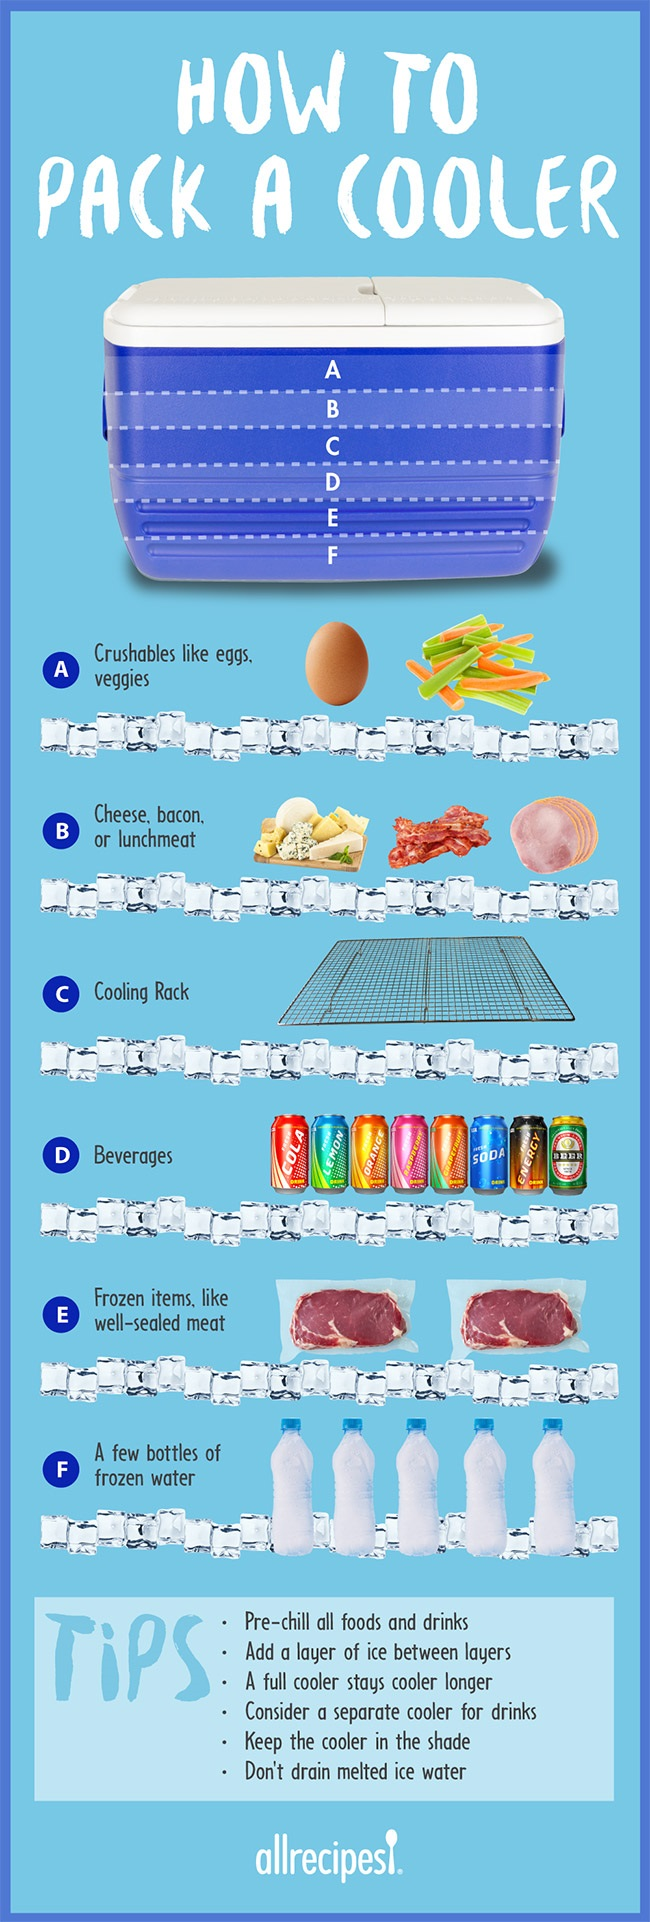 How to Pack a Cooler Infographic by Allrecipes